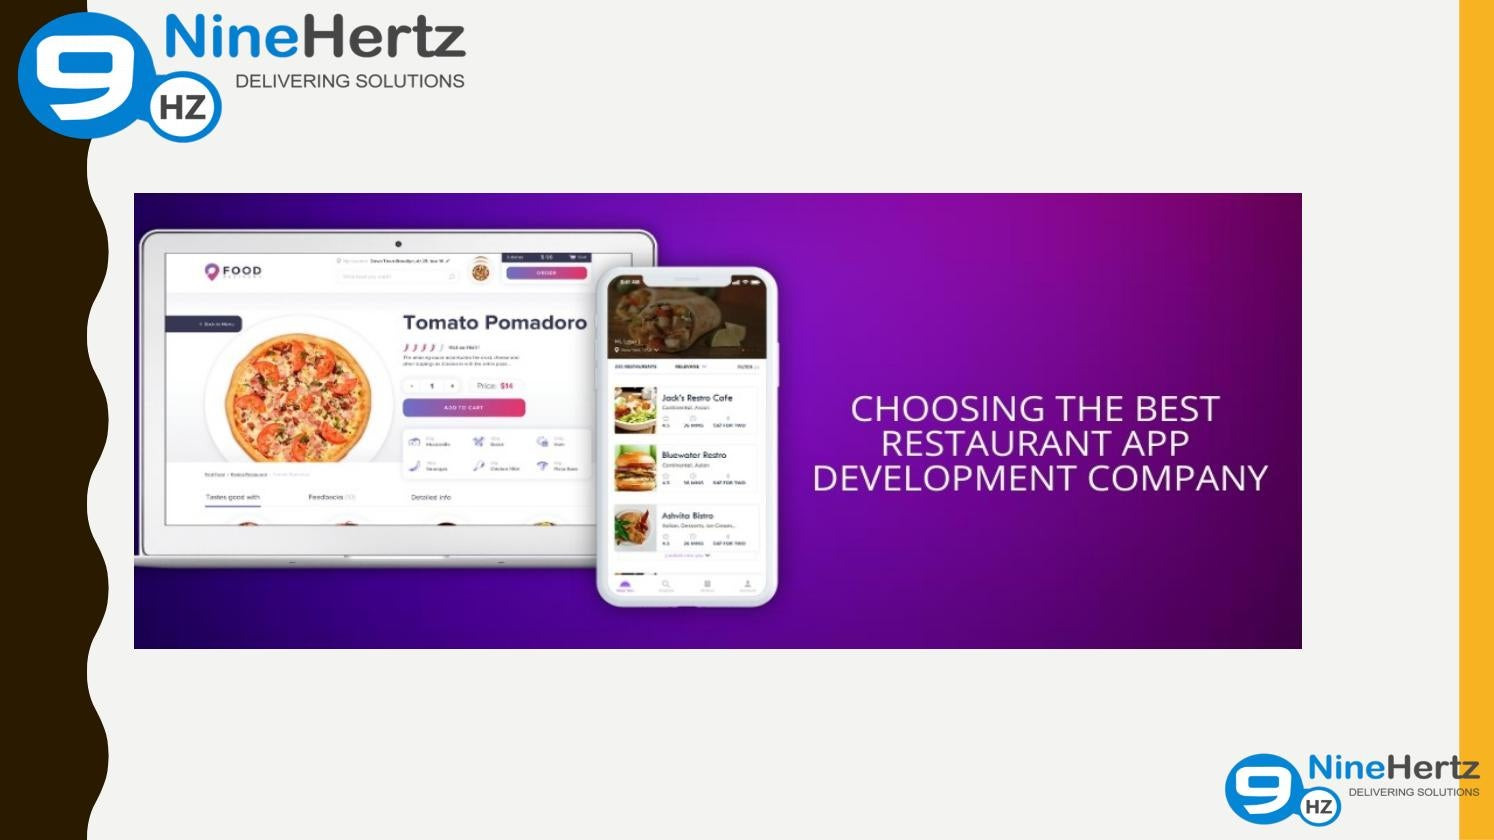 How To Find Best Restaurant Development Company For My